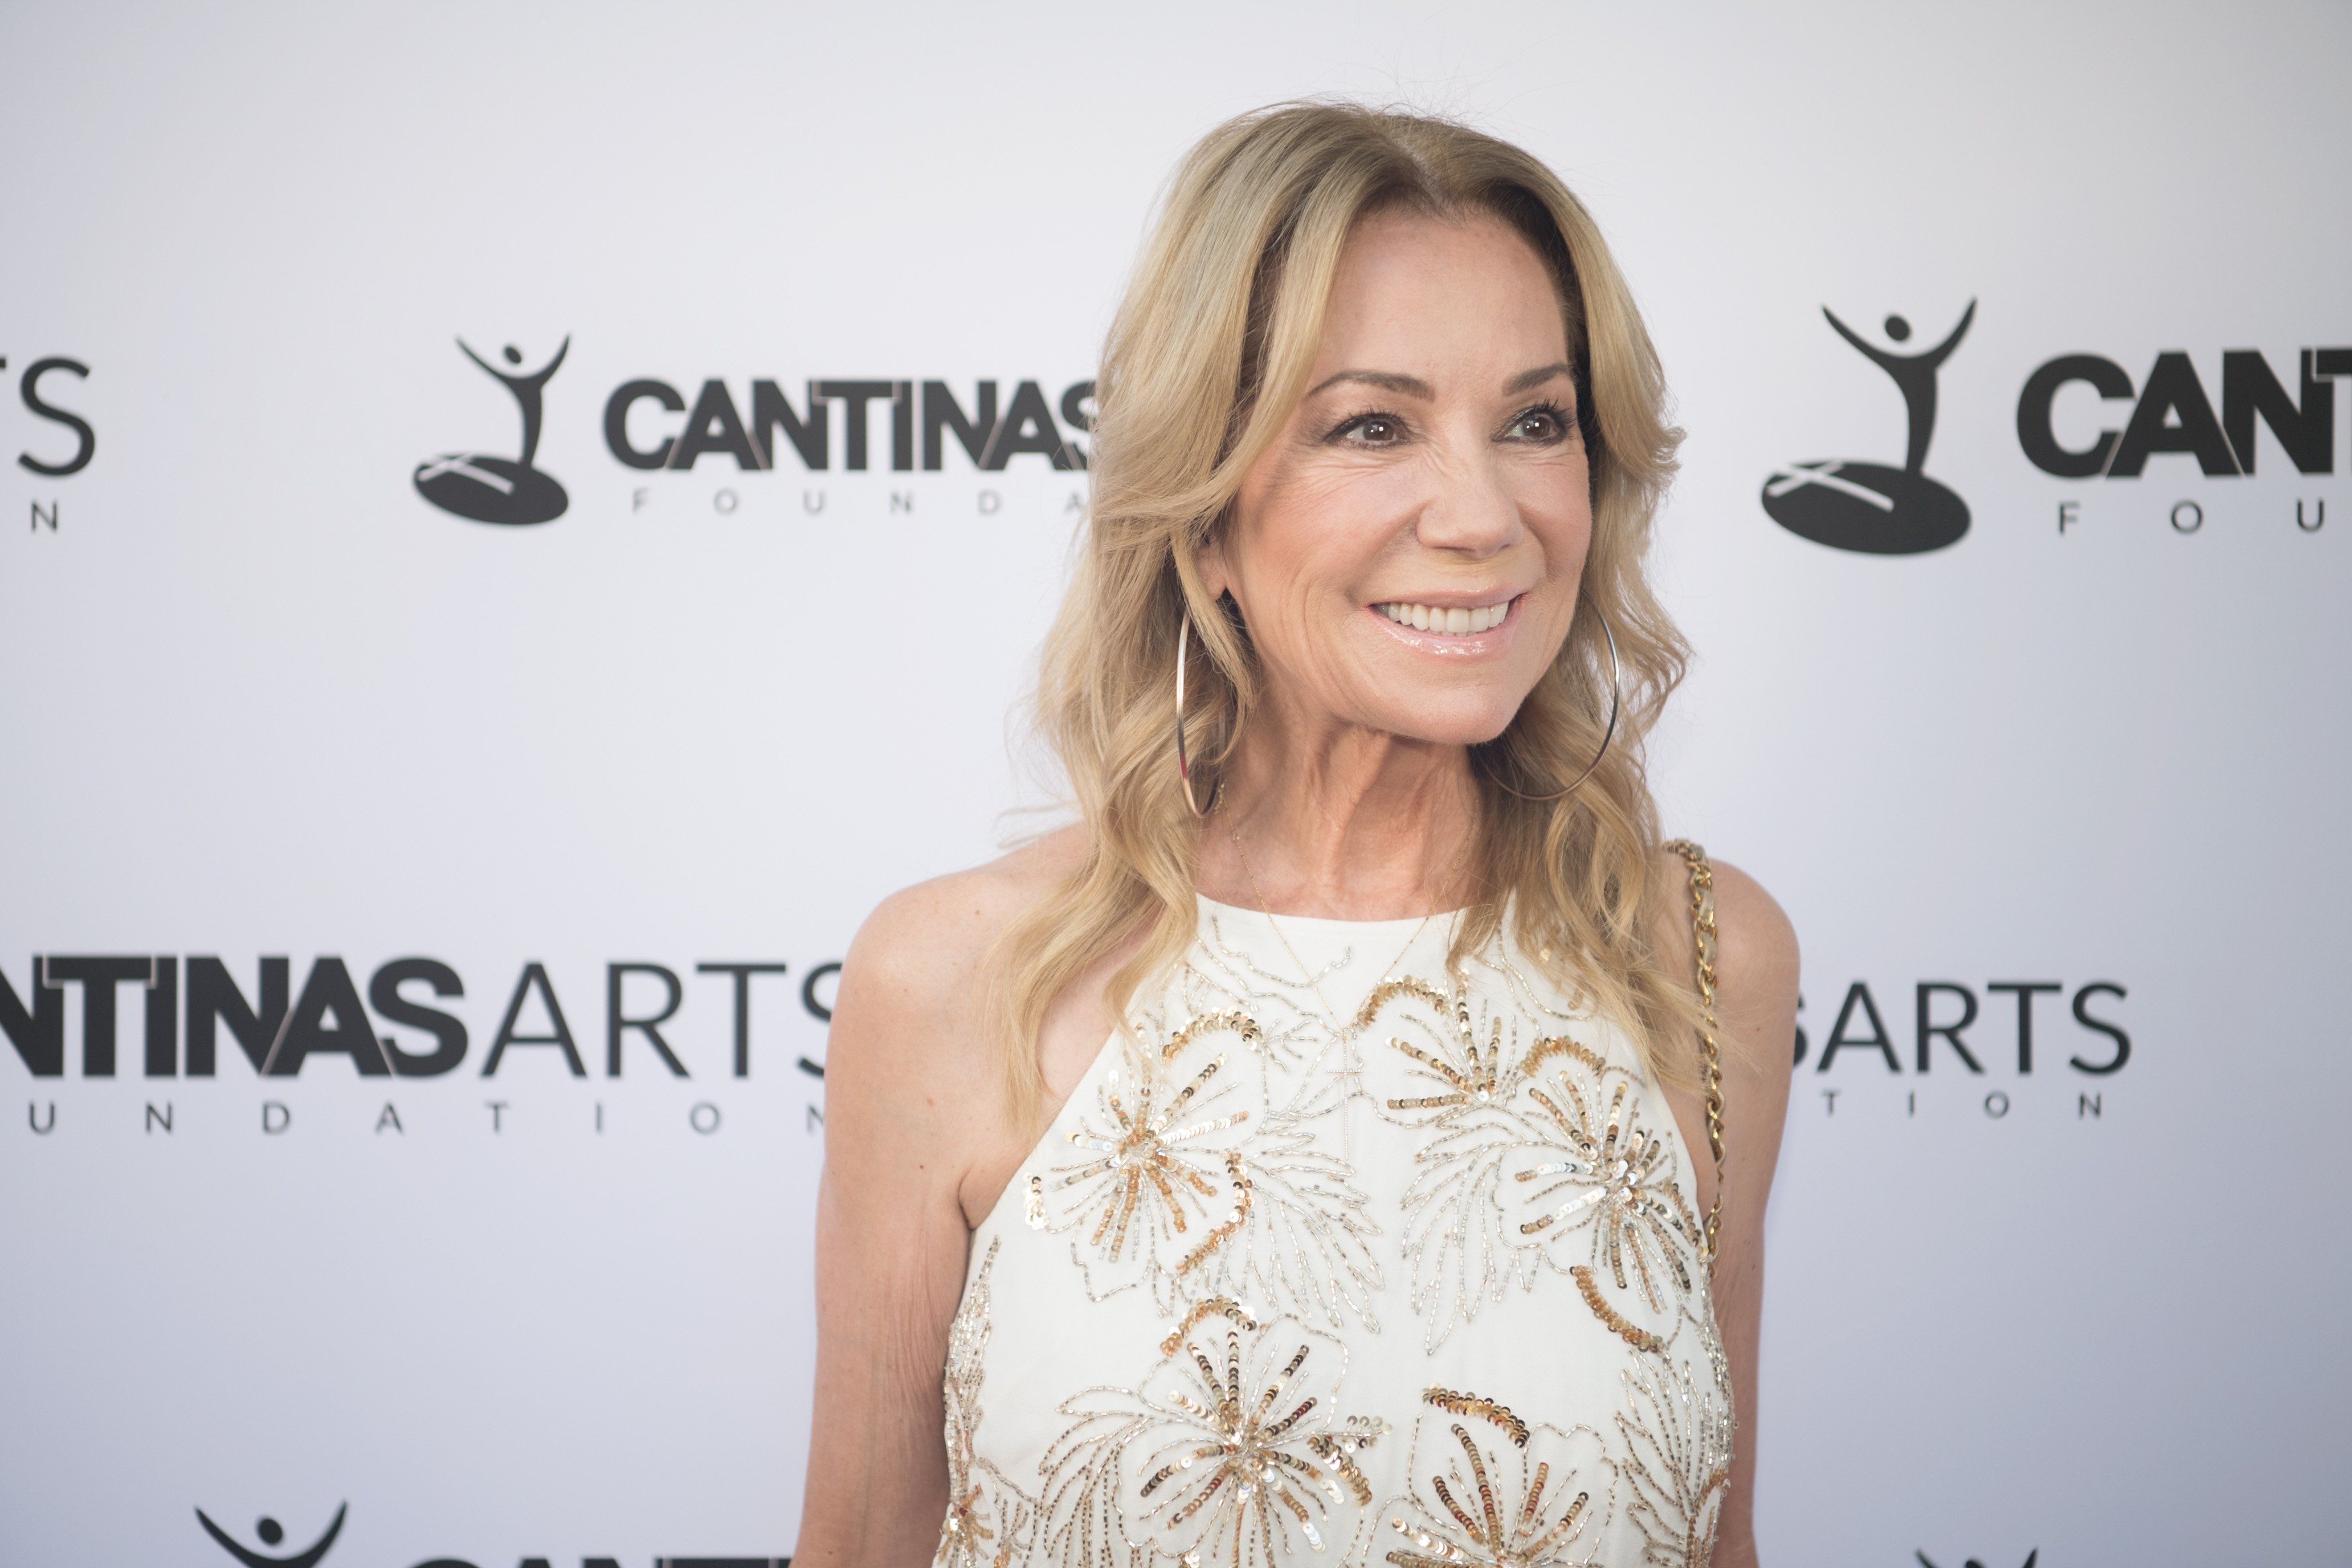 Kathie Lee Gifford arrives at The Cantinas Arts Foundation COTA Celebration of the Arts on September 15, 2018 | Photo: Getty Images